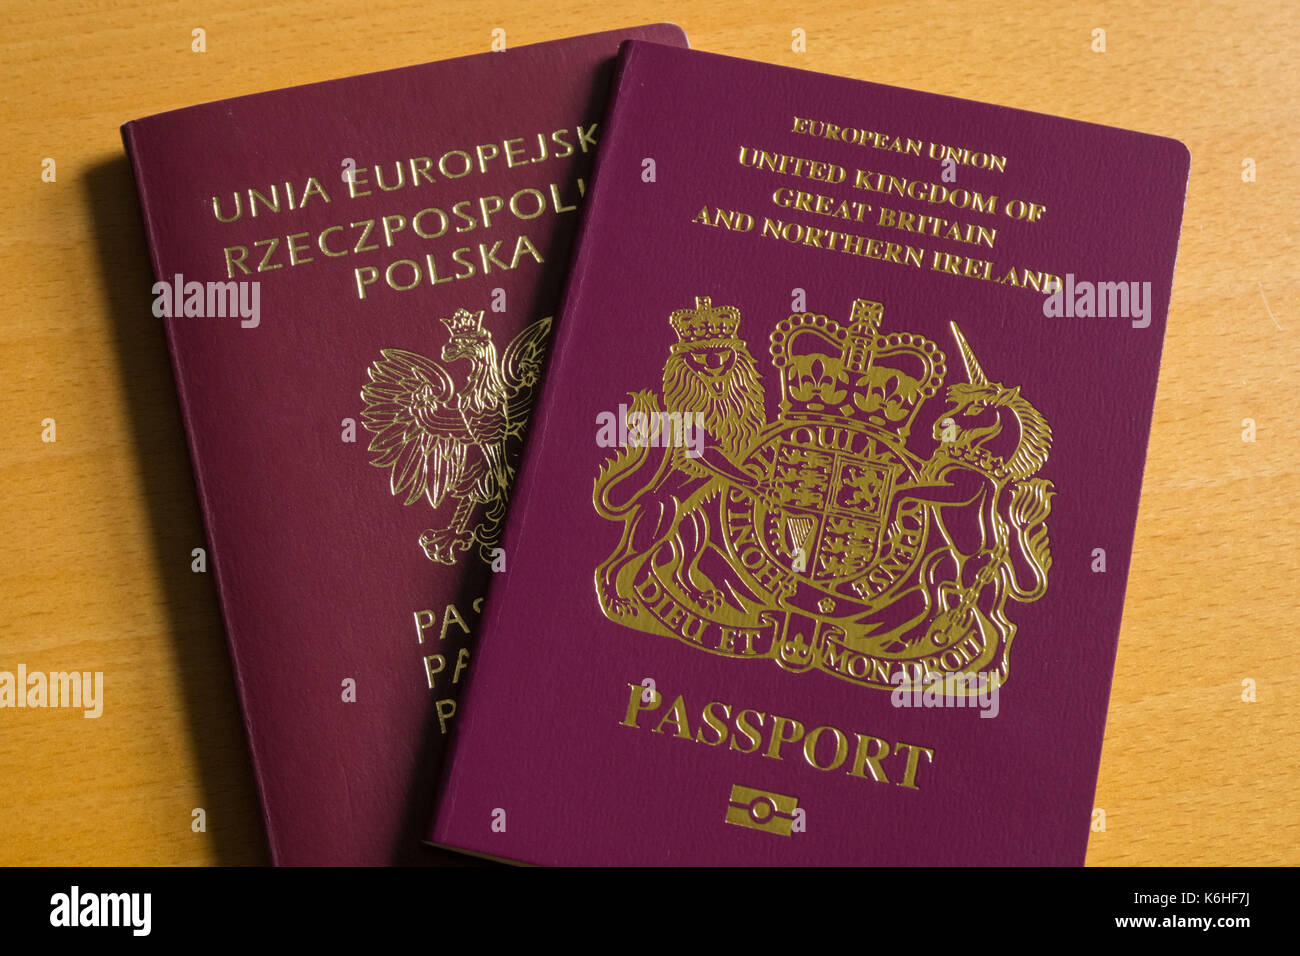 British passport and Polish passport - Stock Image